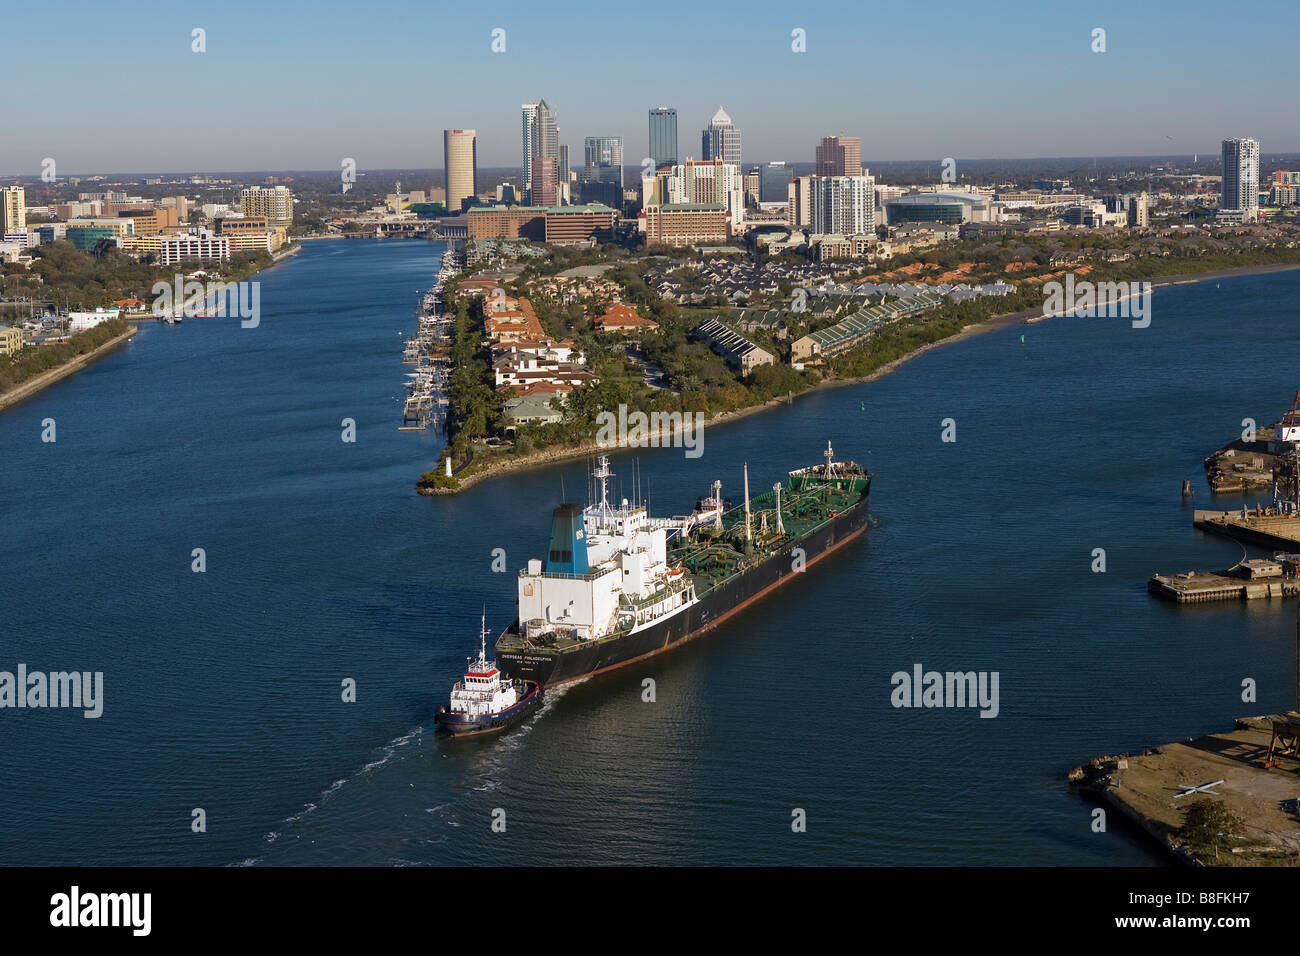 aerial view above tug boat with oil tanker Overseas Philadelphia approaching Port of Tampa Florida Stock Photo